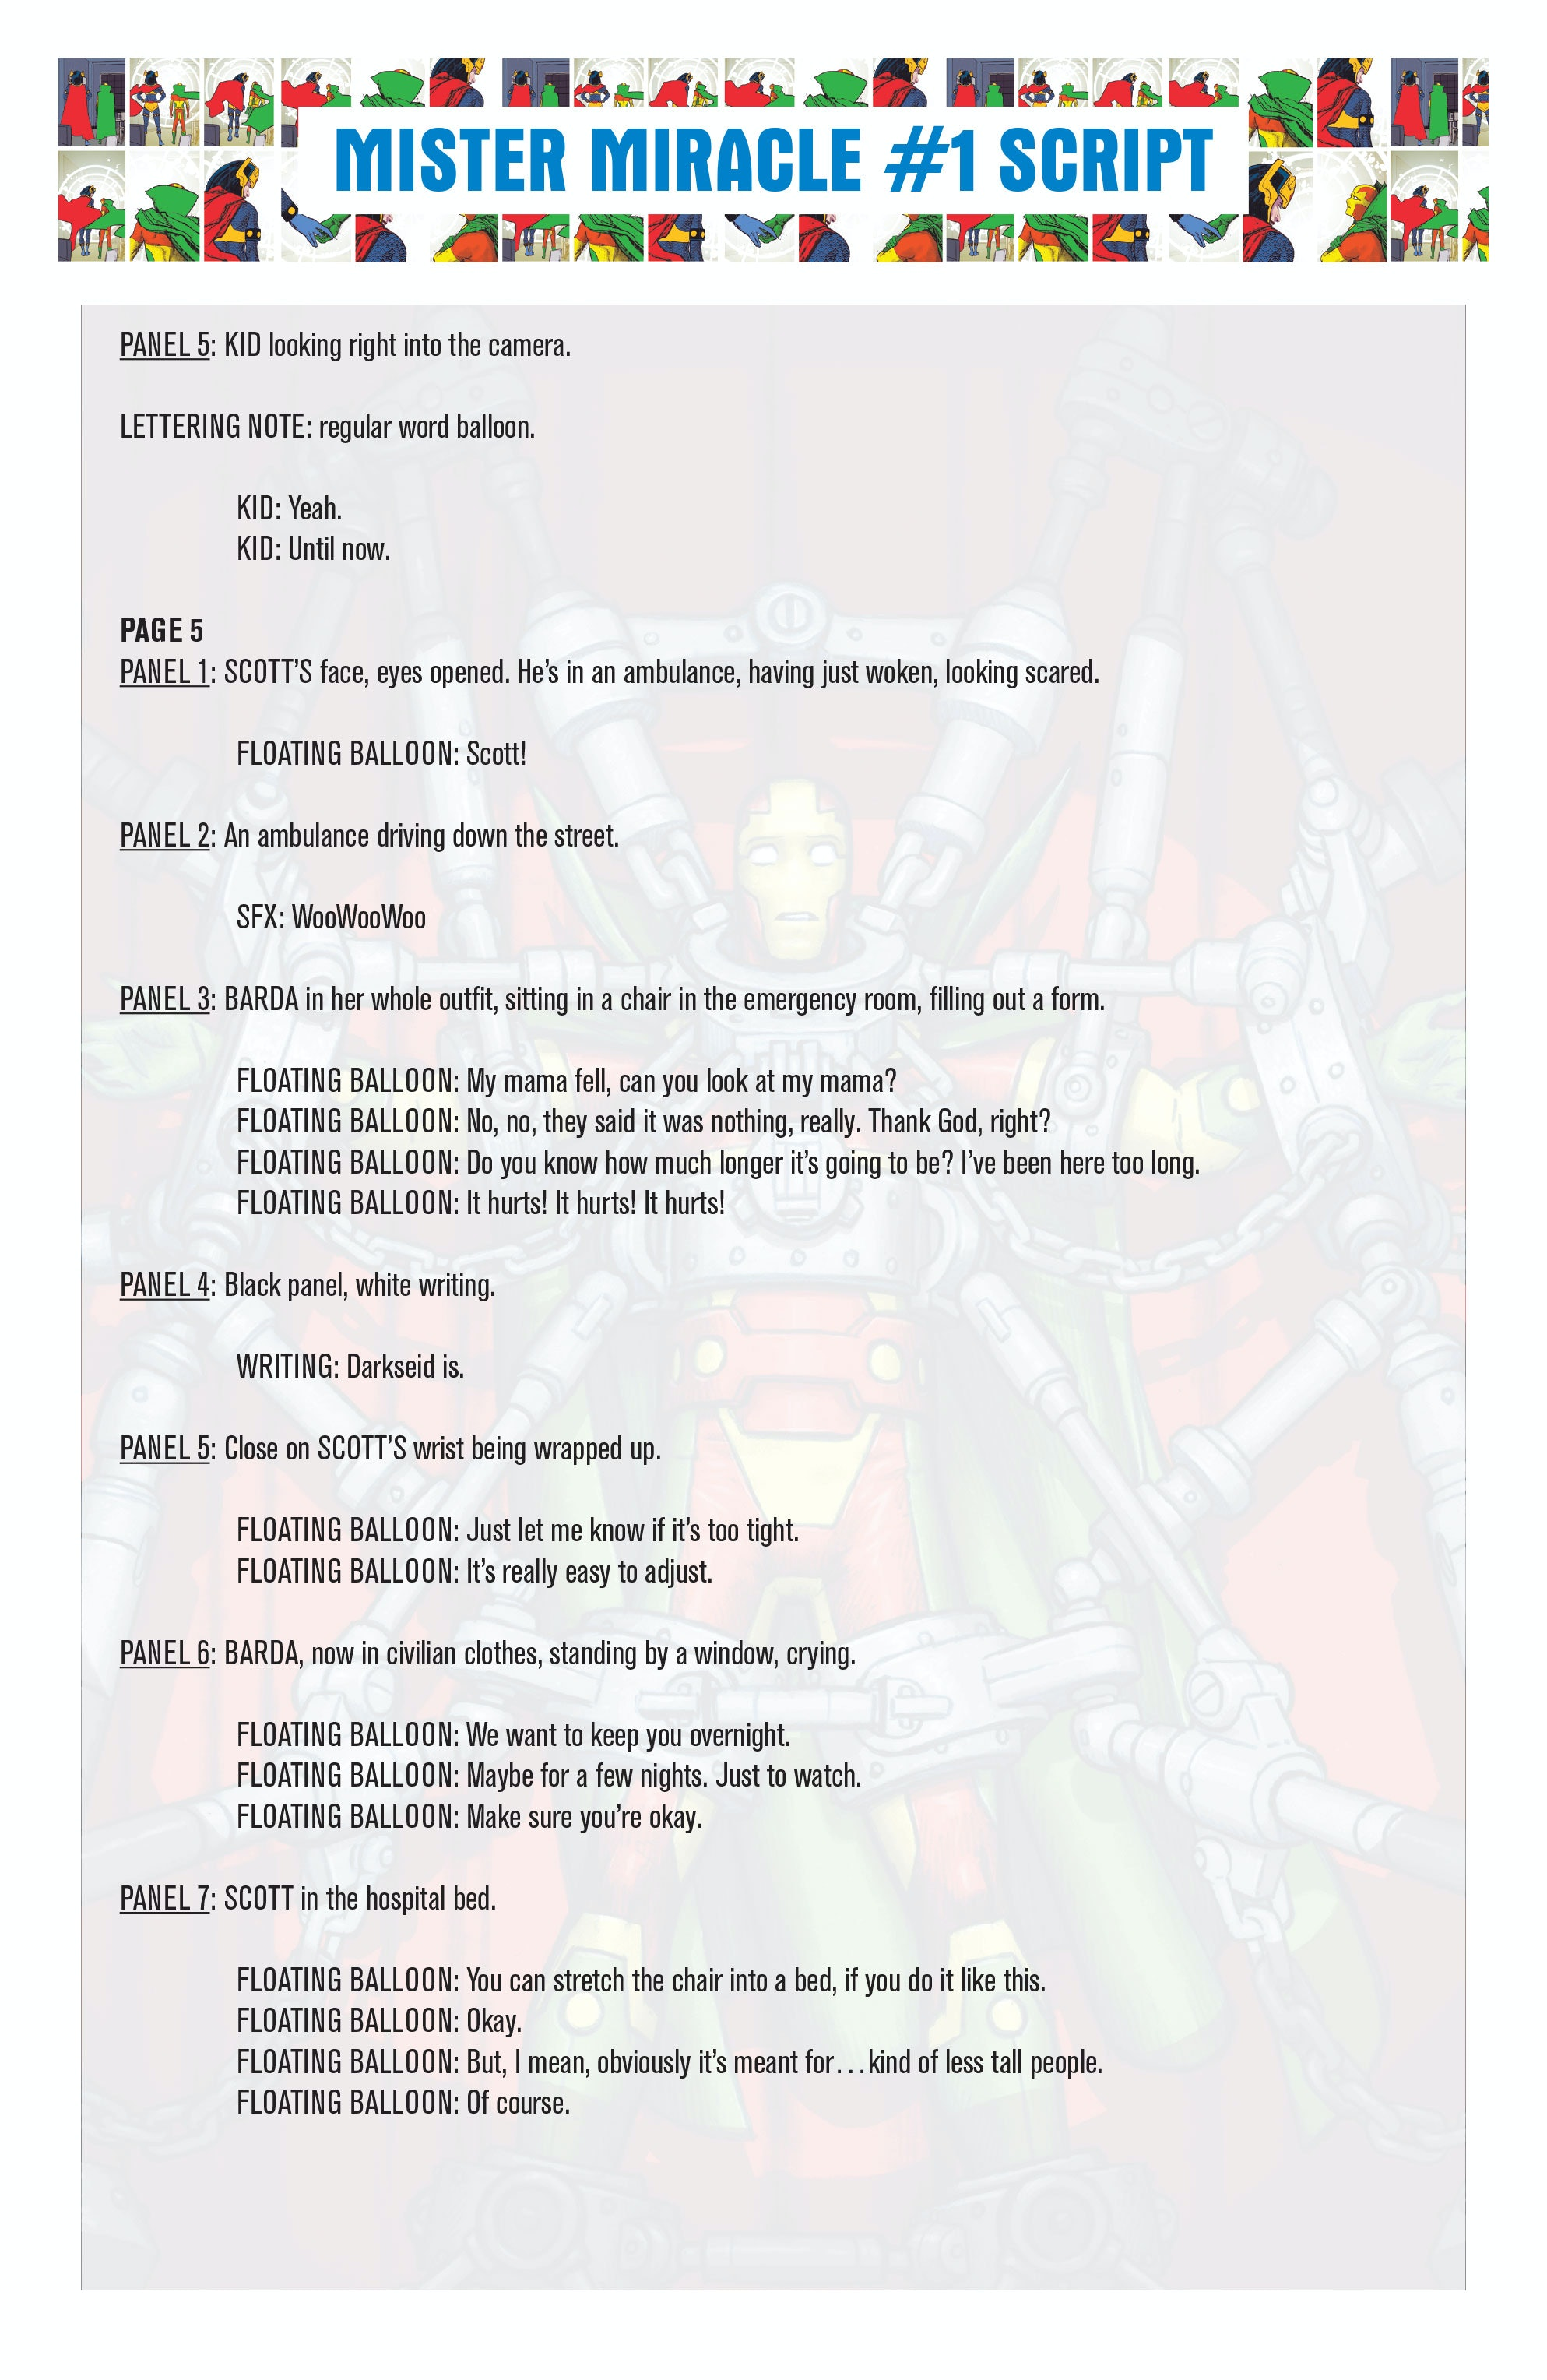 tom King Mister Miracle Scripts